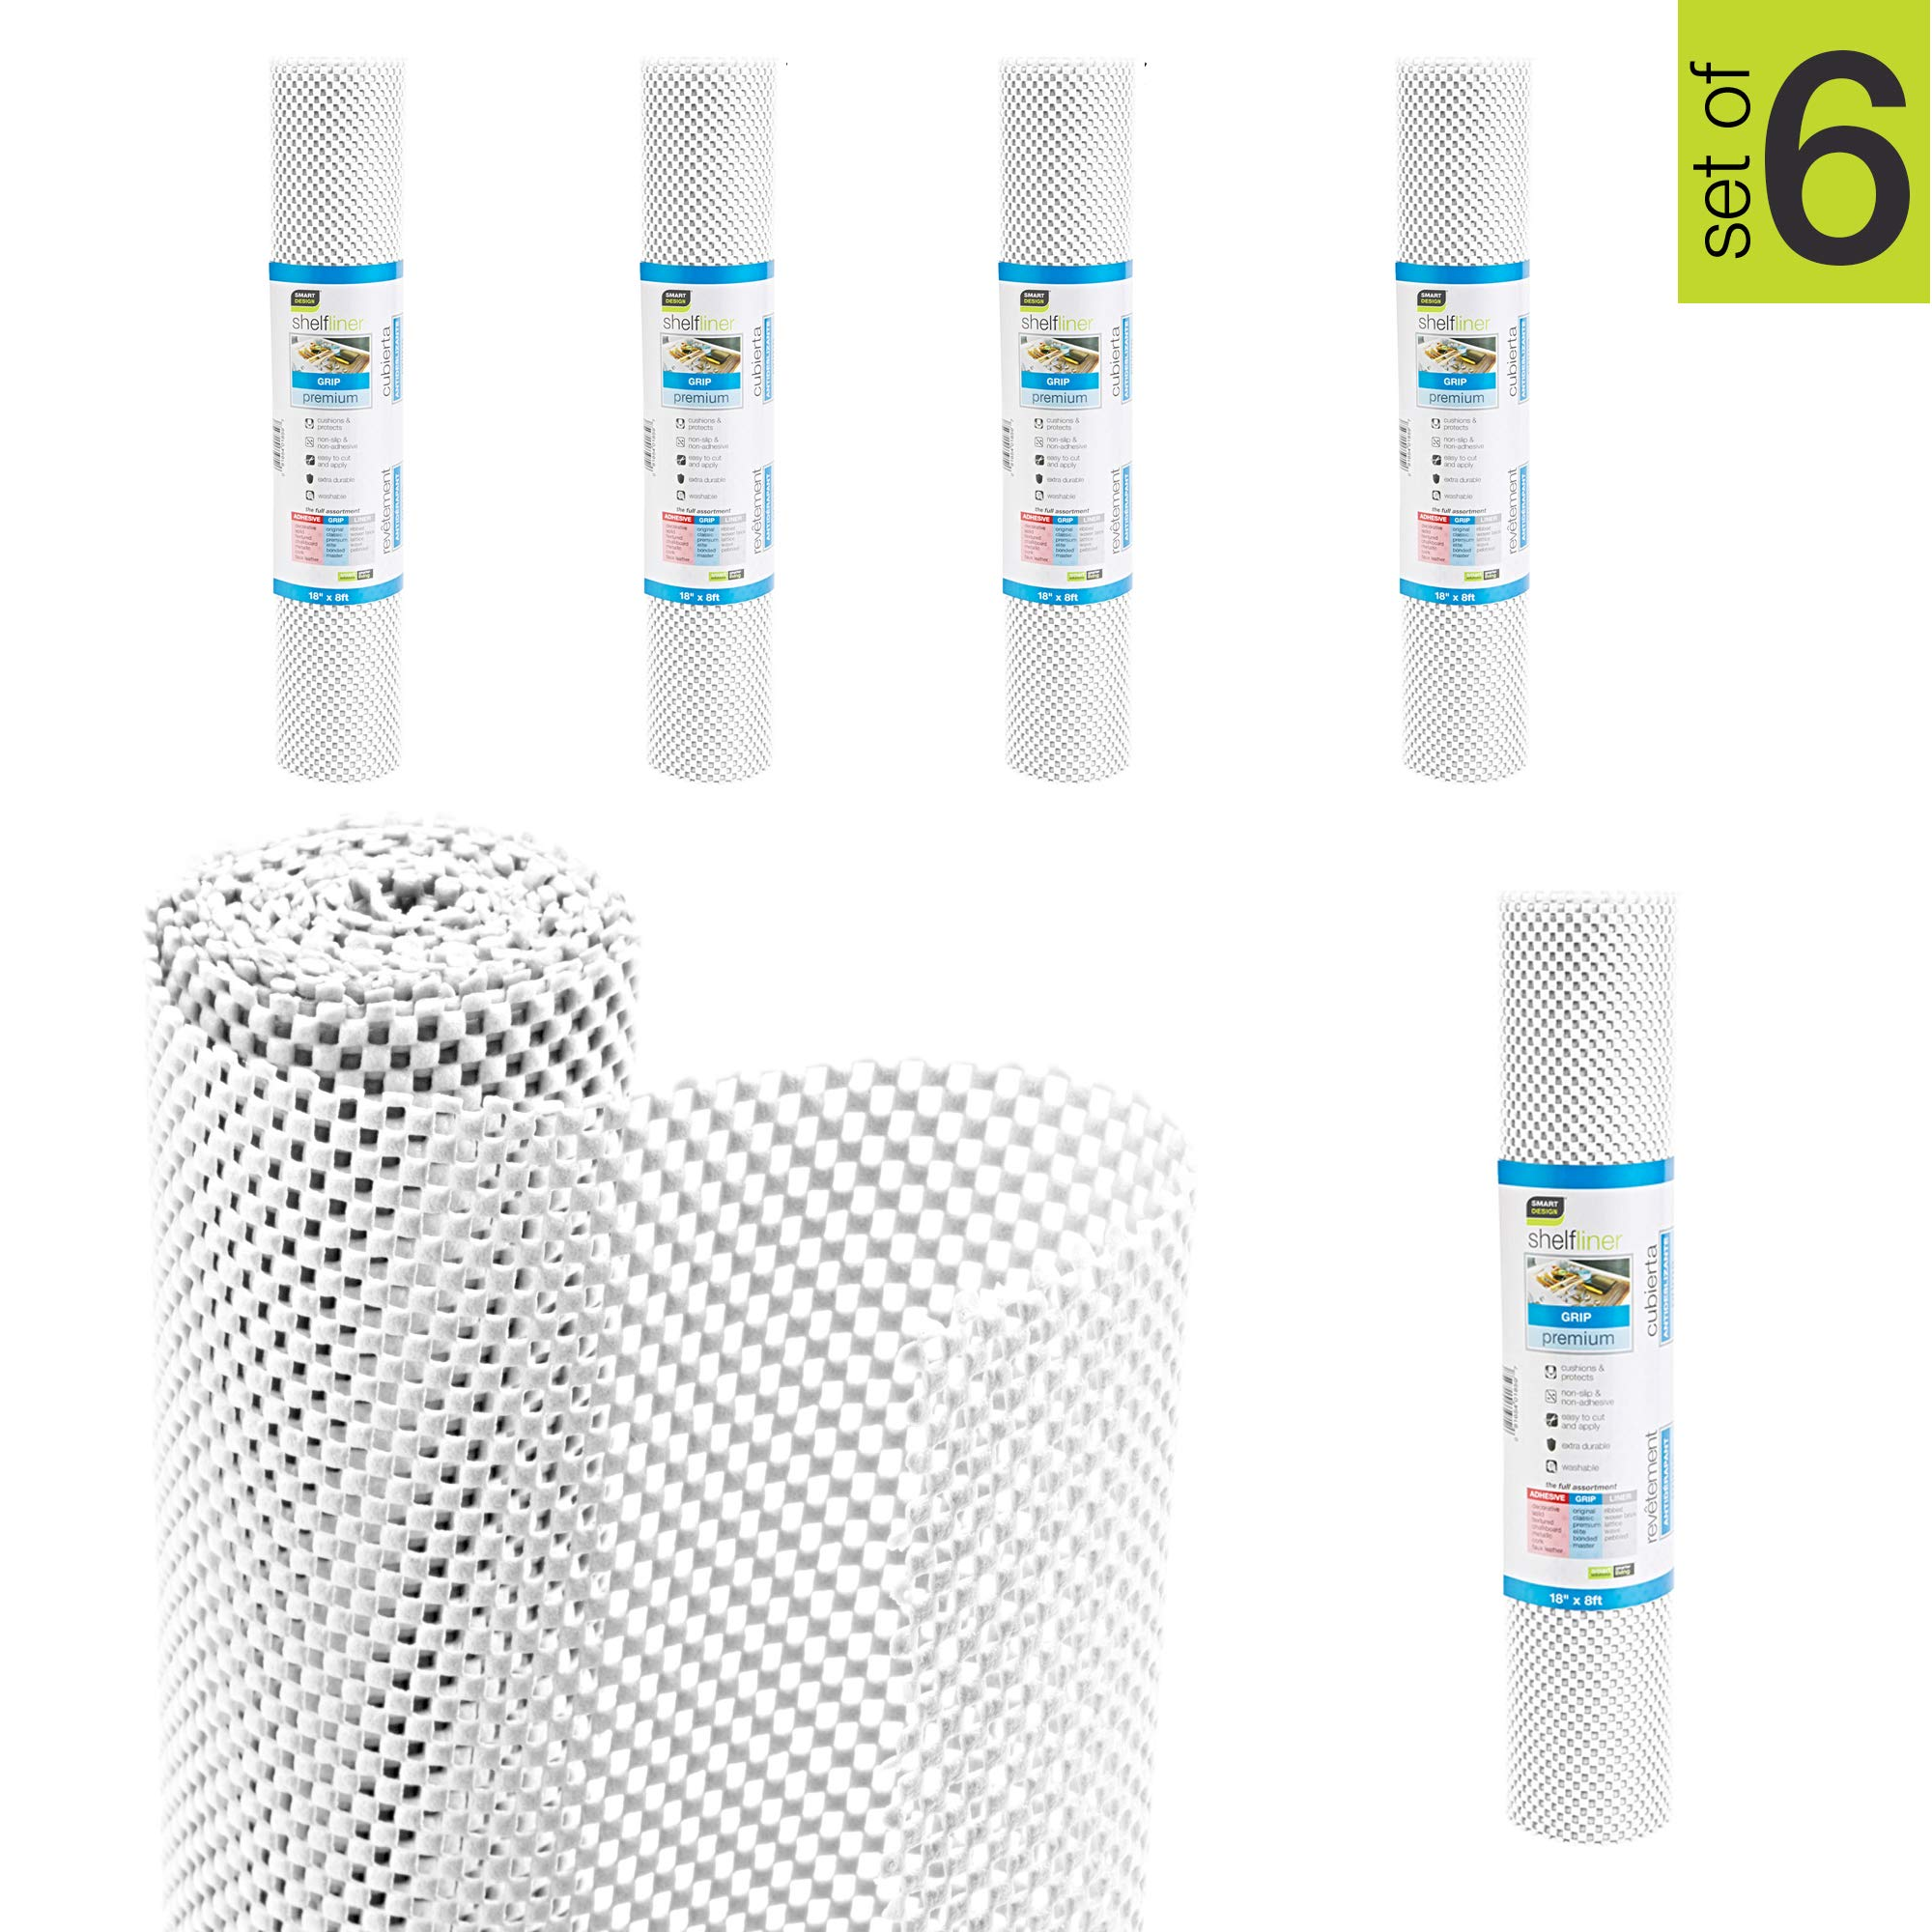 Smart Design Shelf Liner w/Premium Grip - Wipes Clean - Cutable Material - Non Slip Design - for Shelves, Drawers, Flat Surfaces - Kitchen (18 Inch x 8 Feet) [White] - Set of 6-48' Total by Smart Design